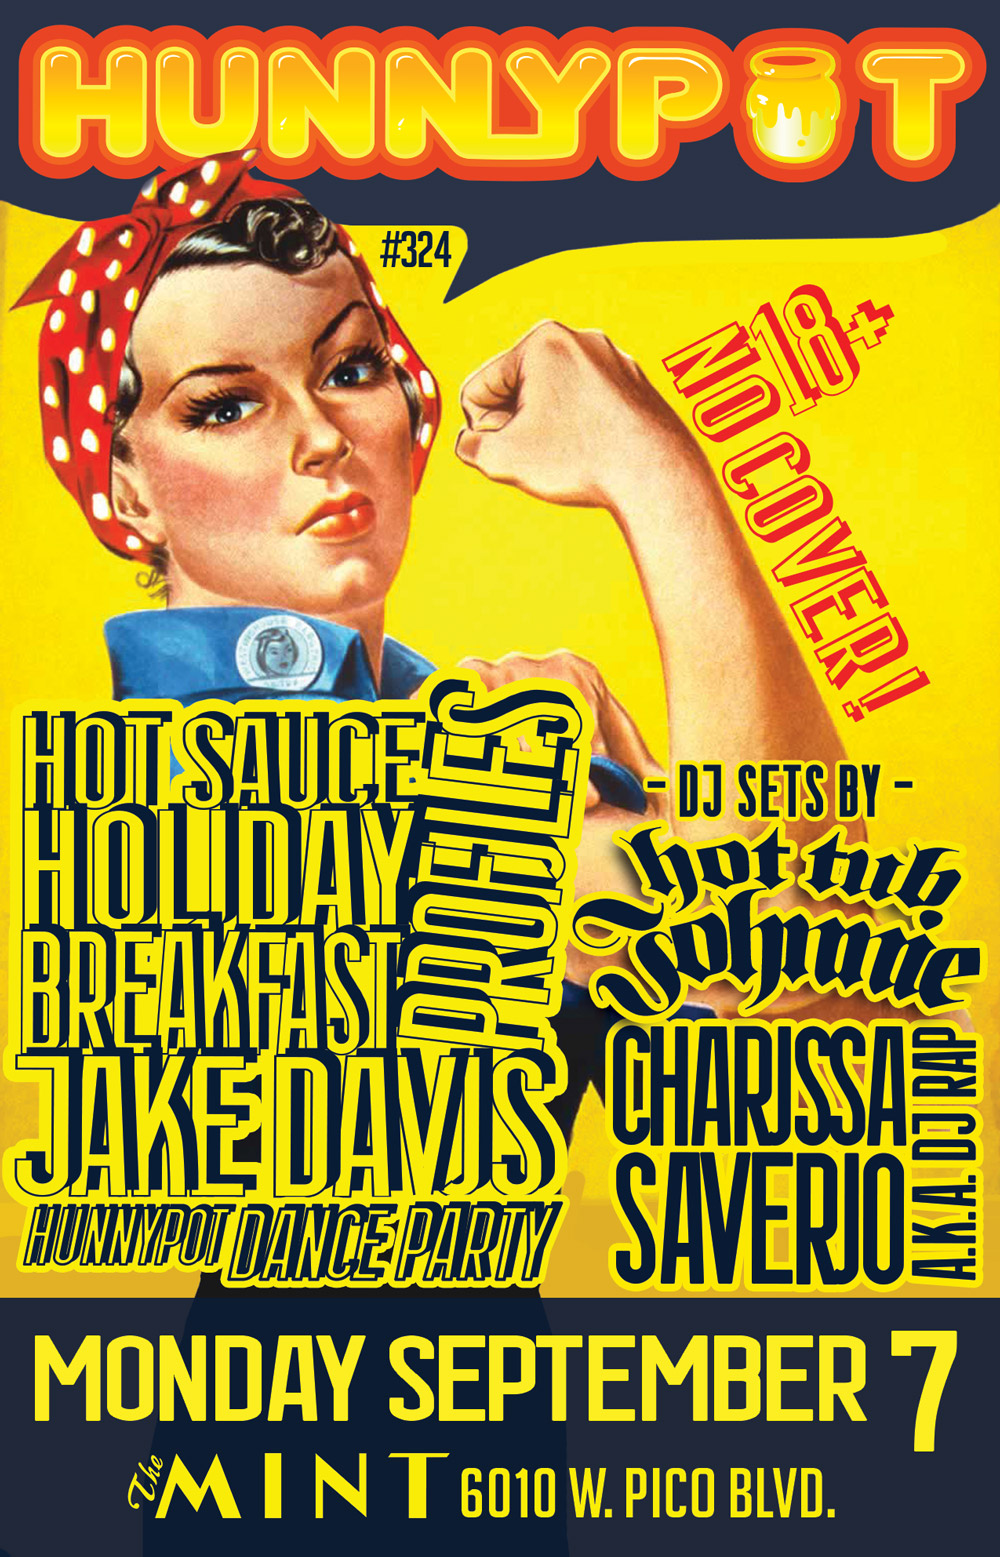 LABOR DAY PARTY w. CHARISSA SAVERIO a.k.a. DJ RAP (INTERVIEW/DJ SET) + HOT SAUCE HOLIDAY + BREAKFAST + PR0FILES + JAKE DAVIS